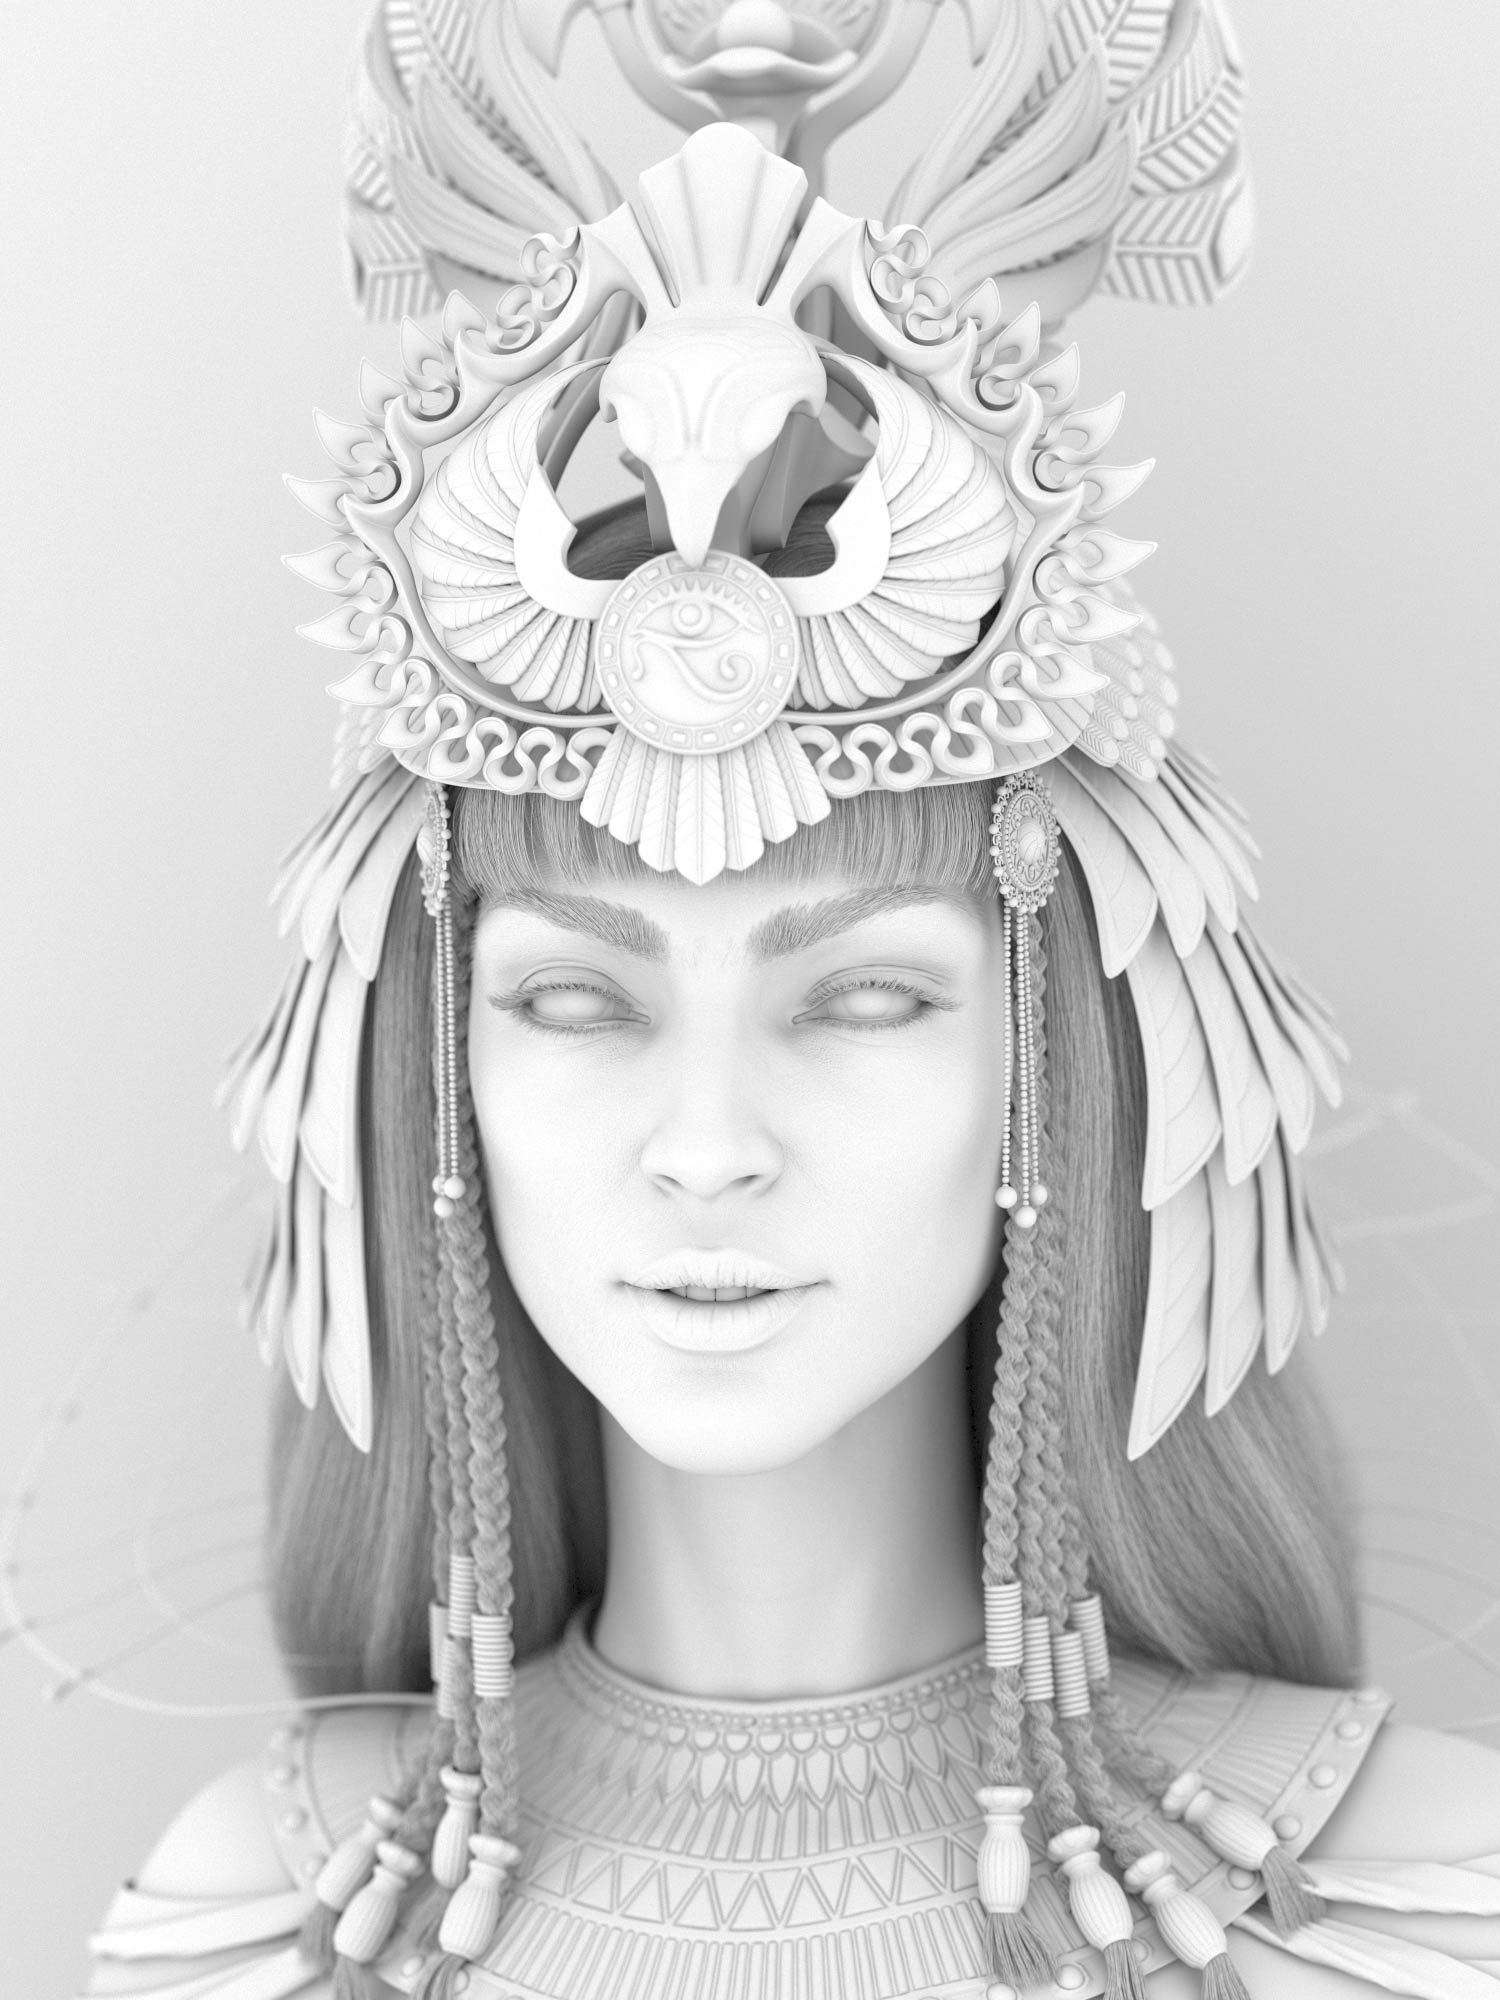 egyptian_queen_Cleopatra_Hatshepsut_Nofretete_CG_character_historical_figure_pharaoh_egypt_hight_ambient-occlusion Egyptian queen 3D model